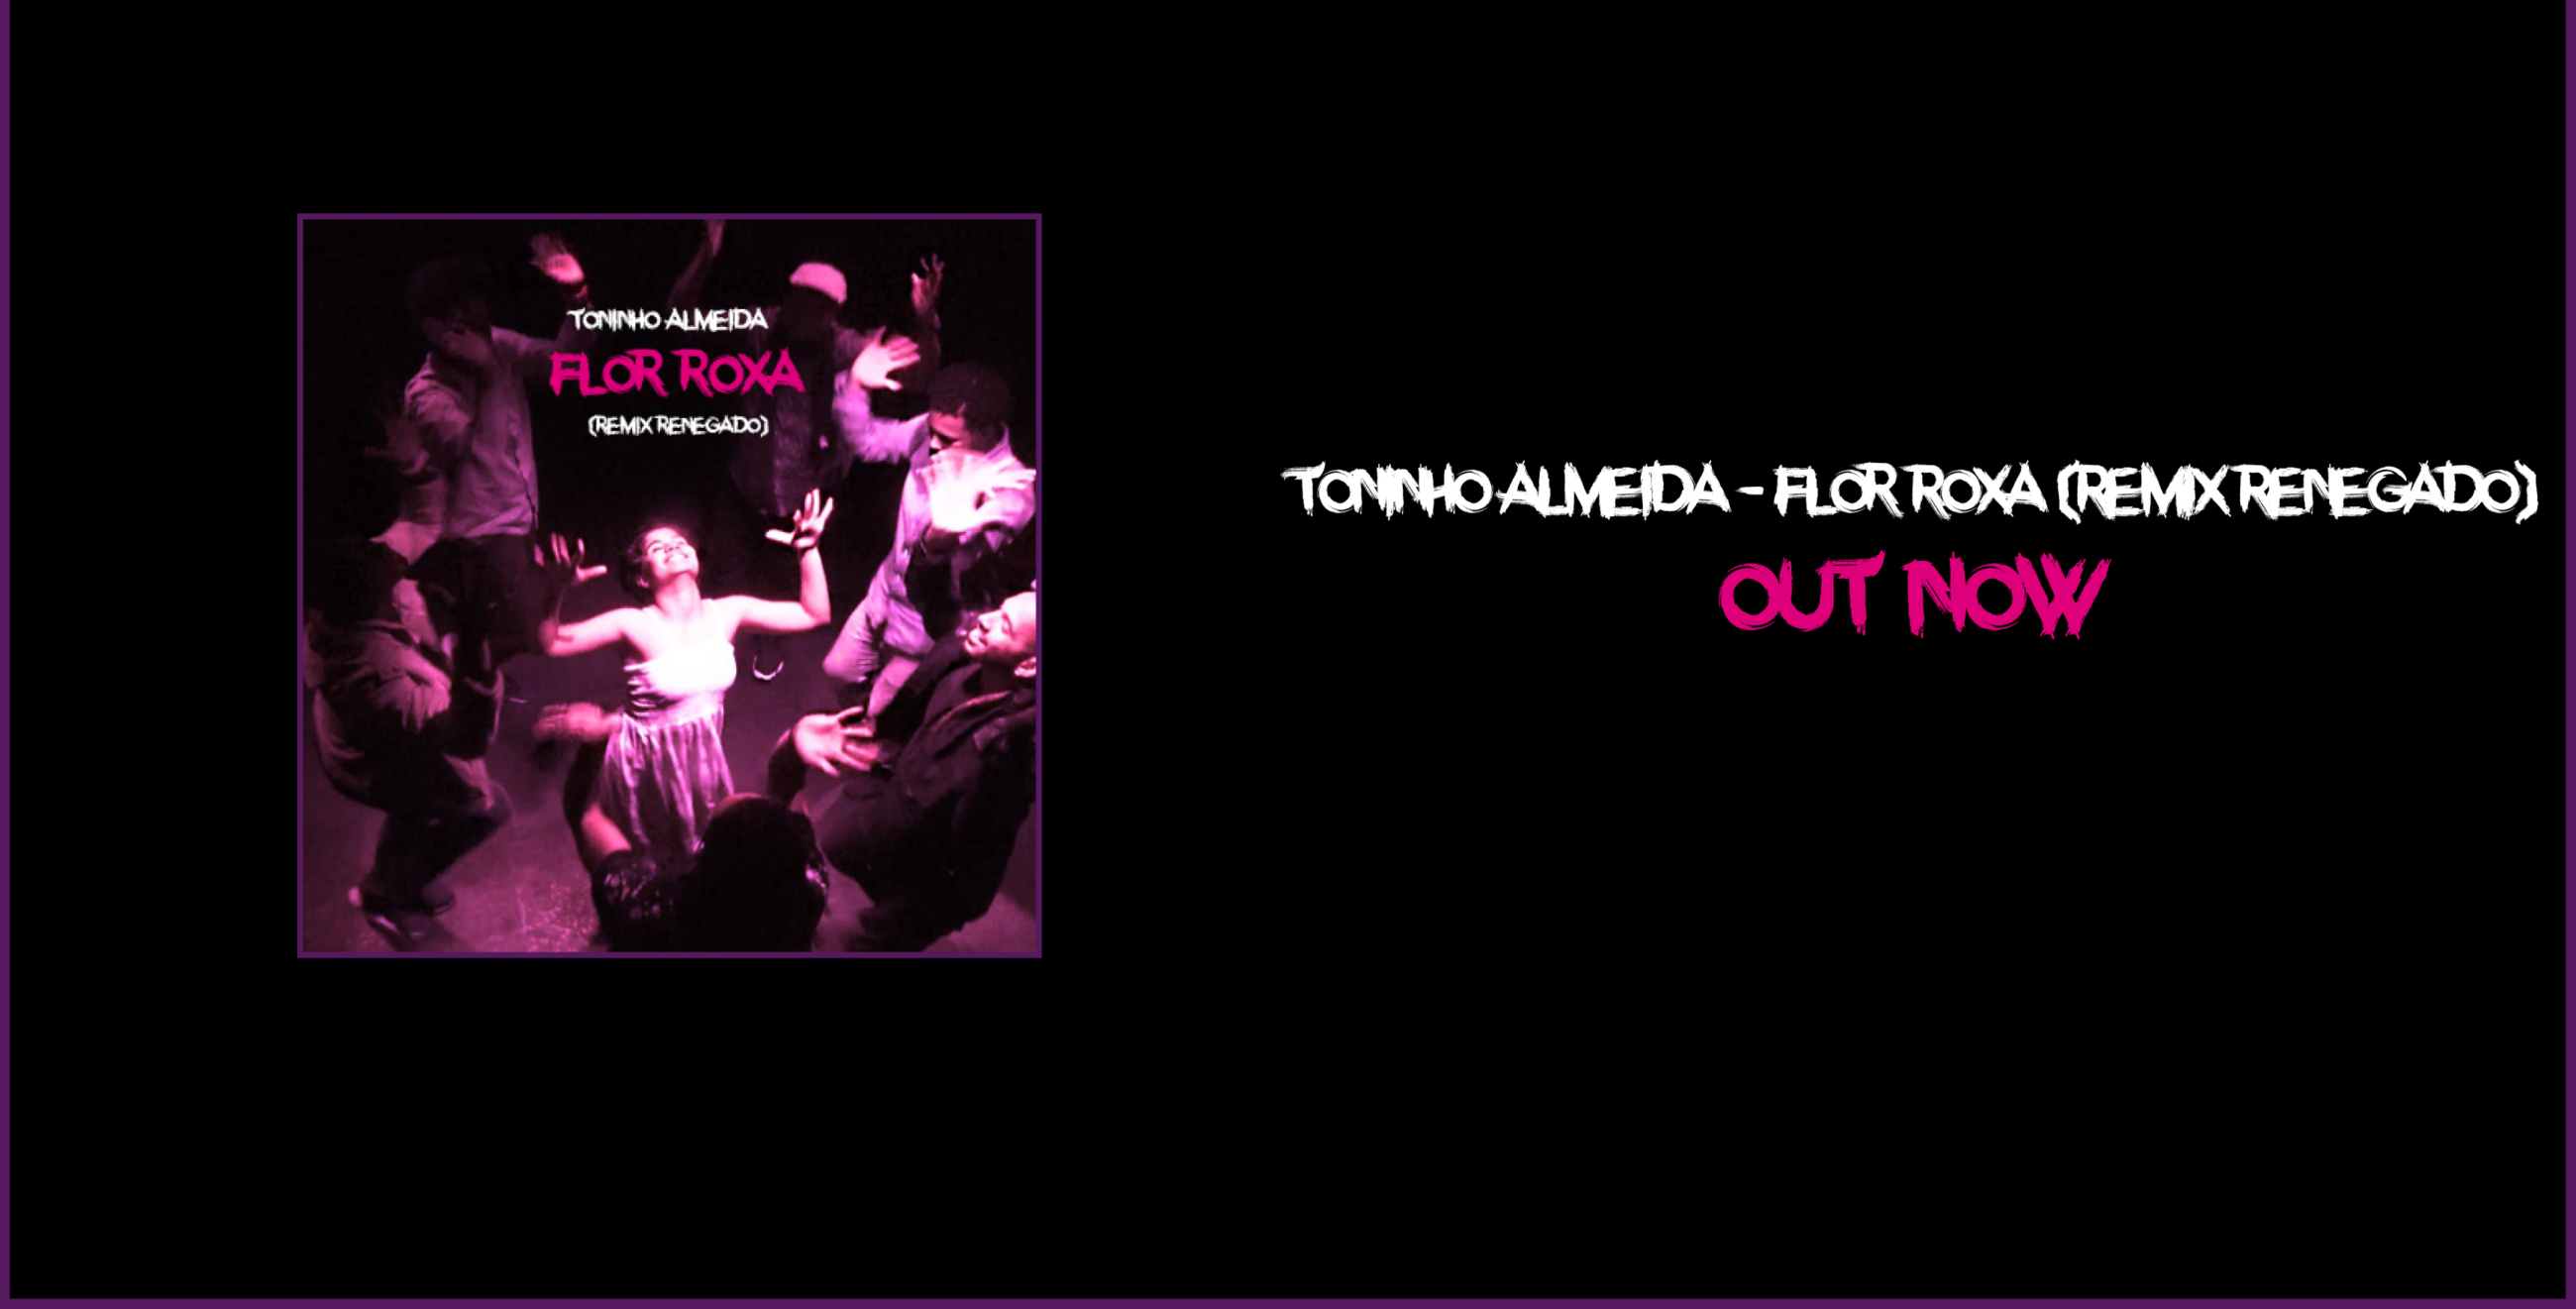 Toninho Almeida - Intact out may 6th